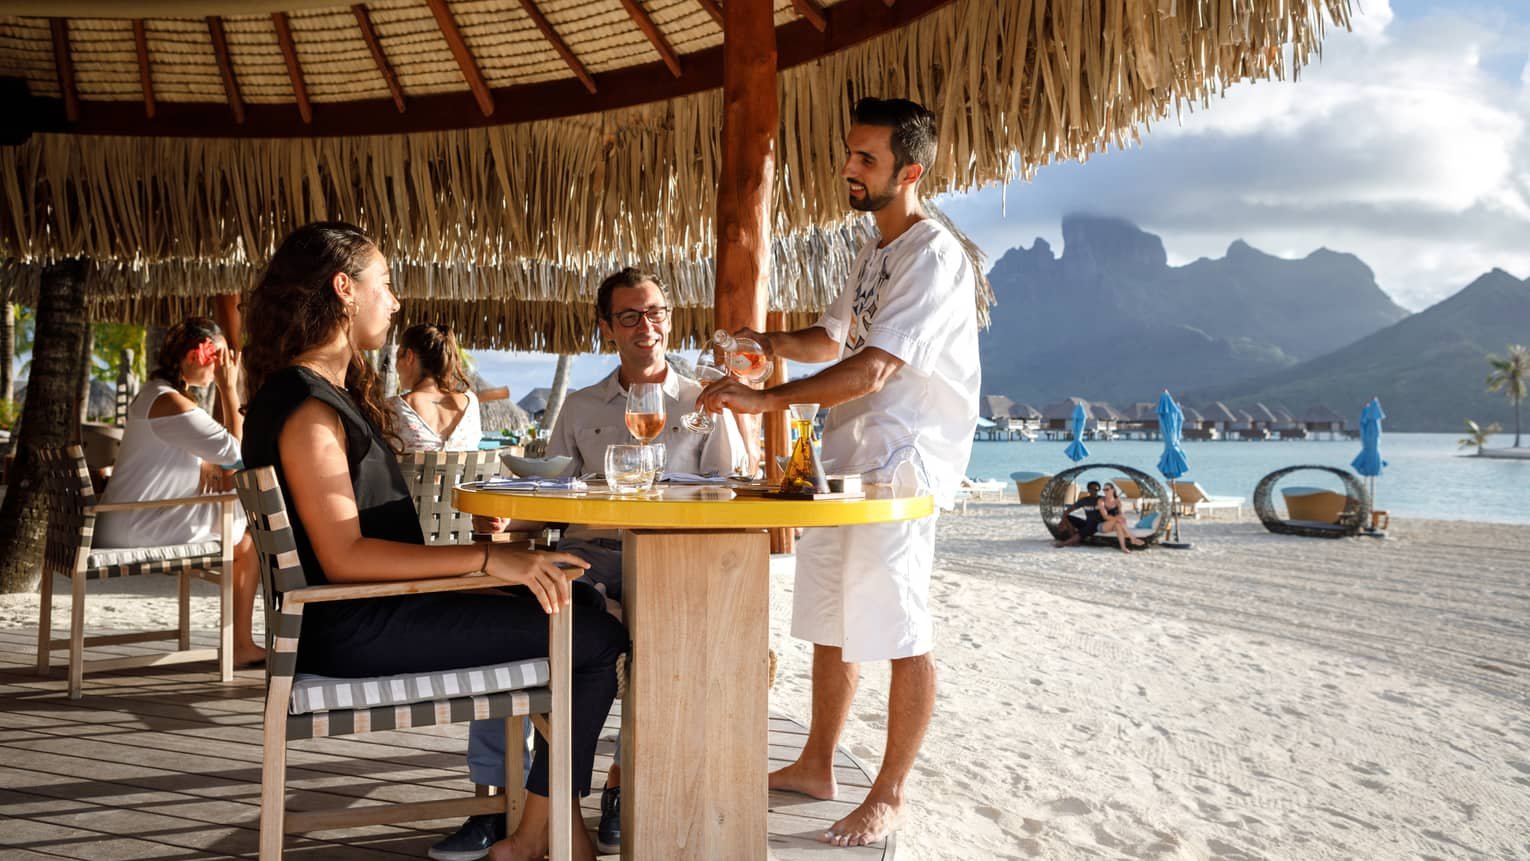 Staff refills wine for couple at patio table on white sand beach